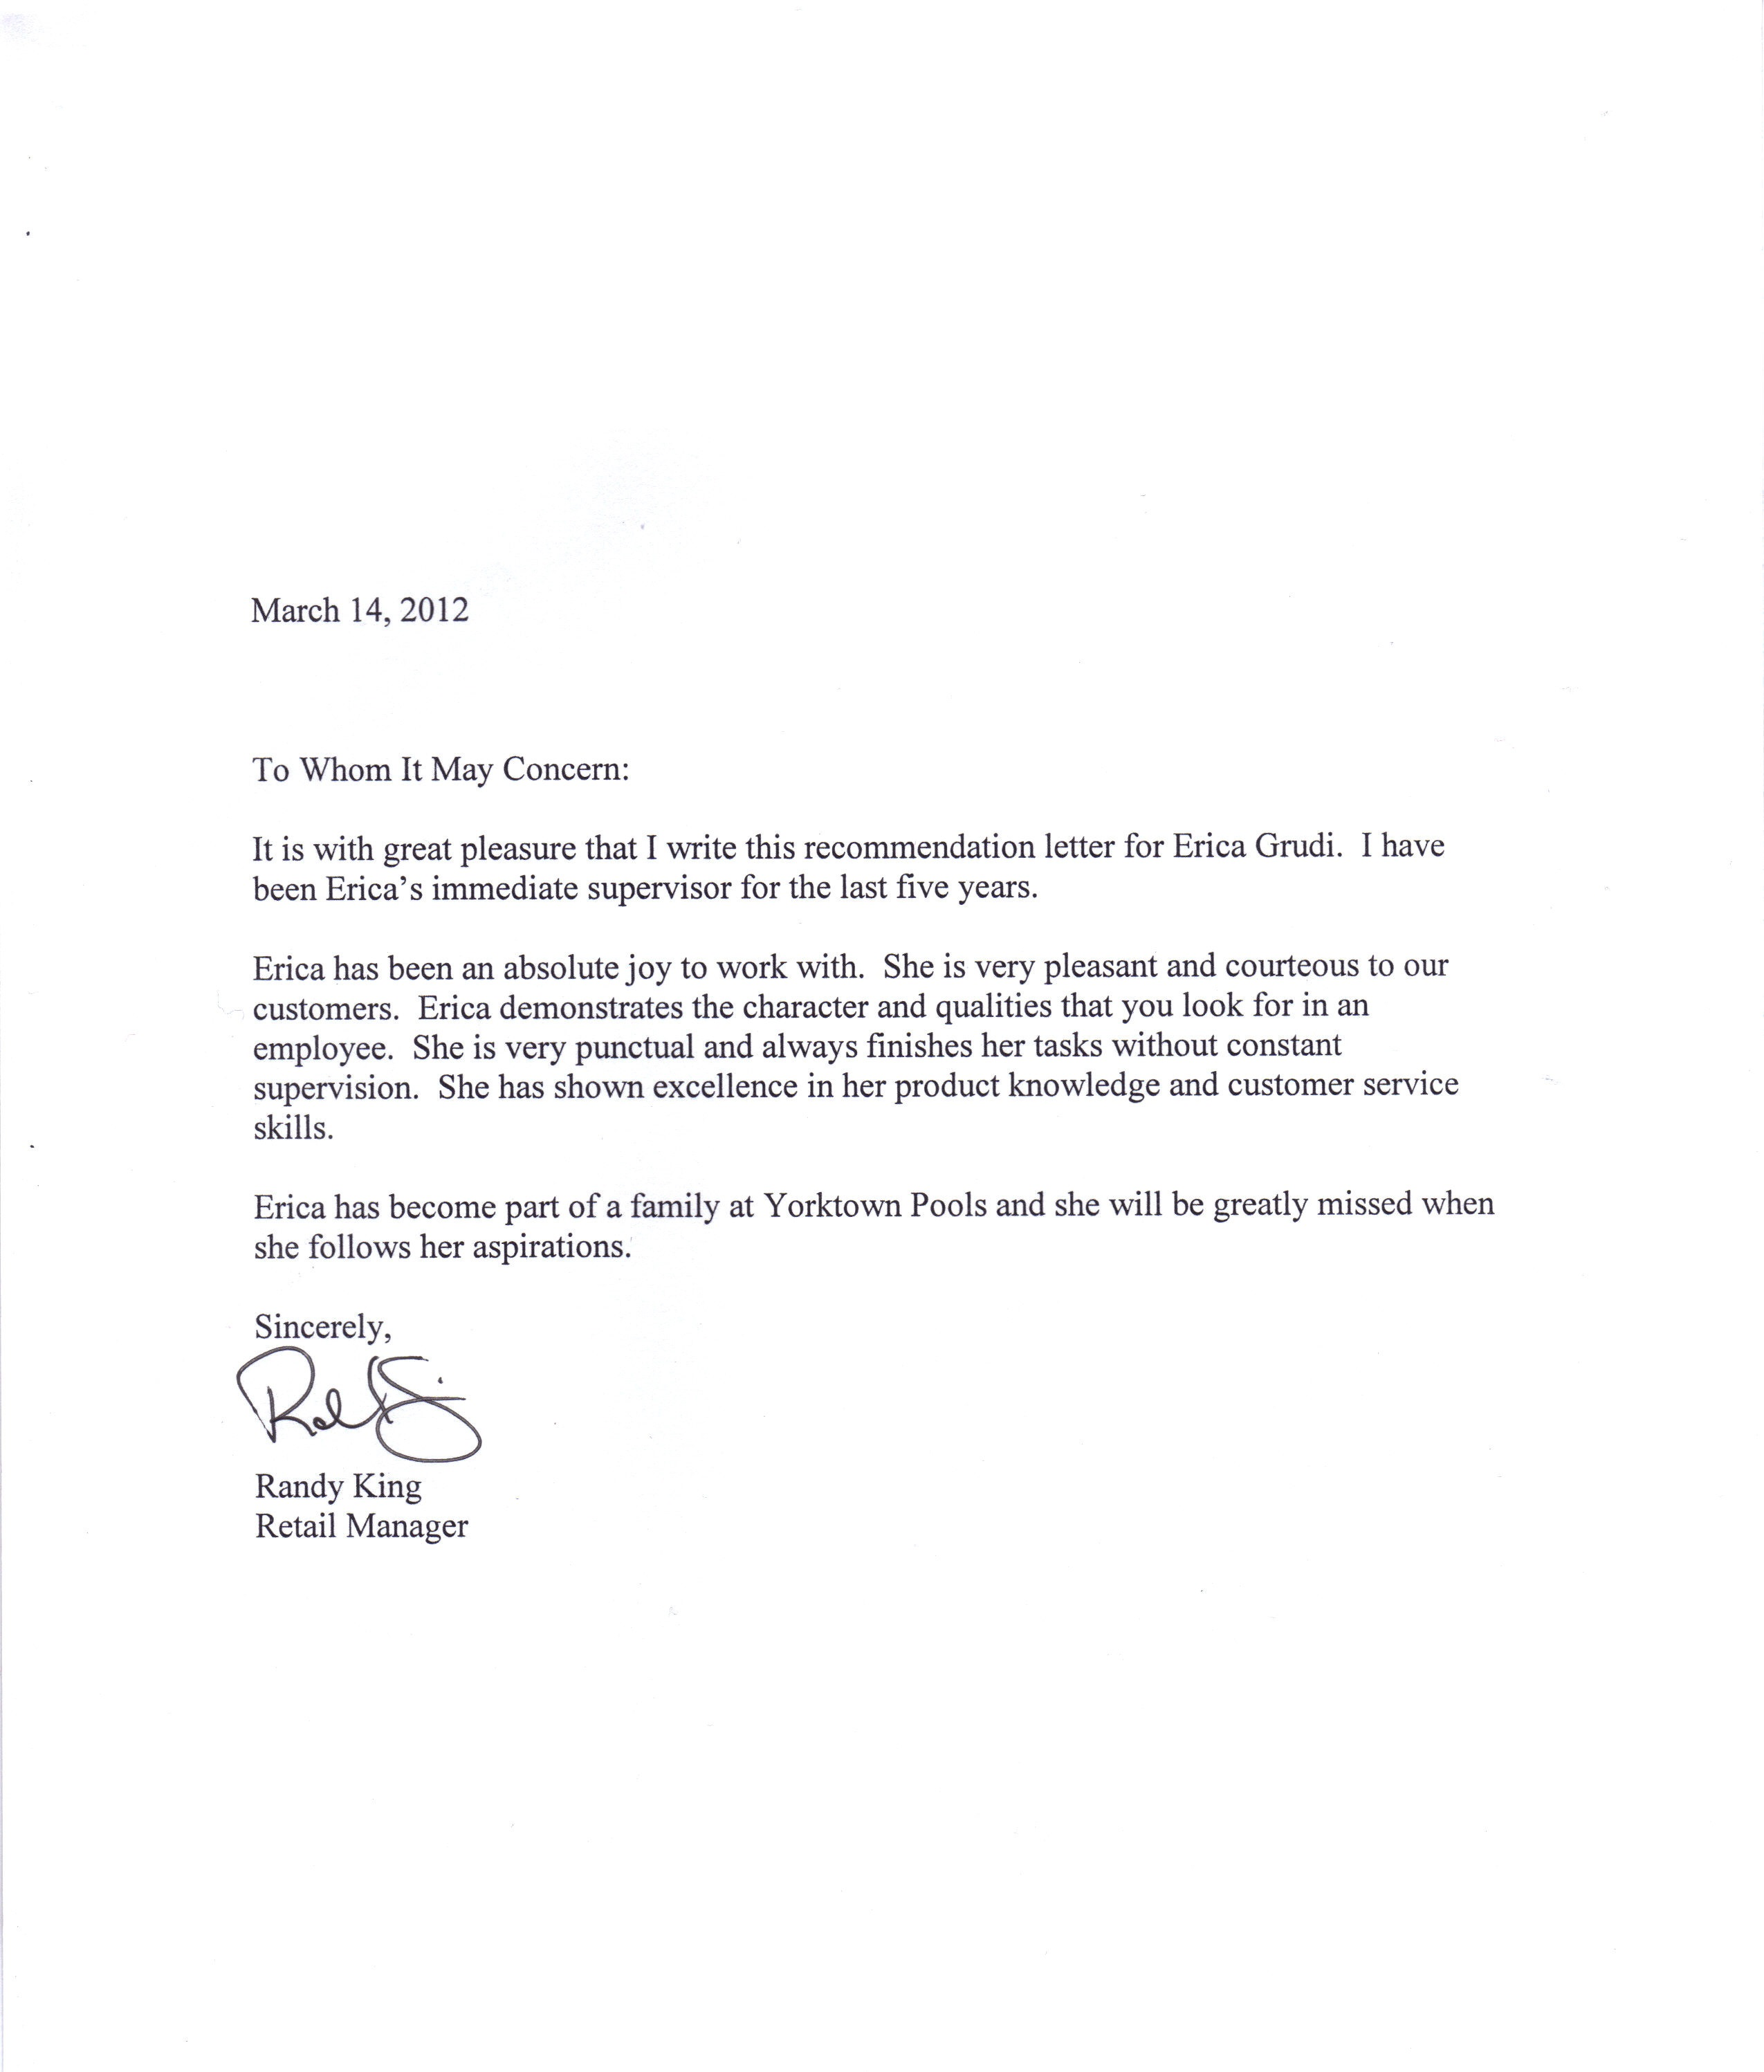 Free Recommendation Letter Download – Letter of Recommendations